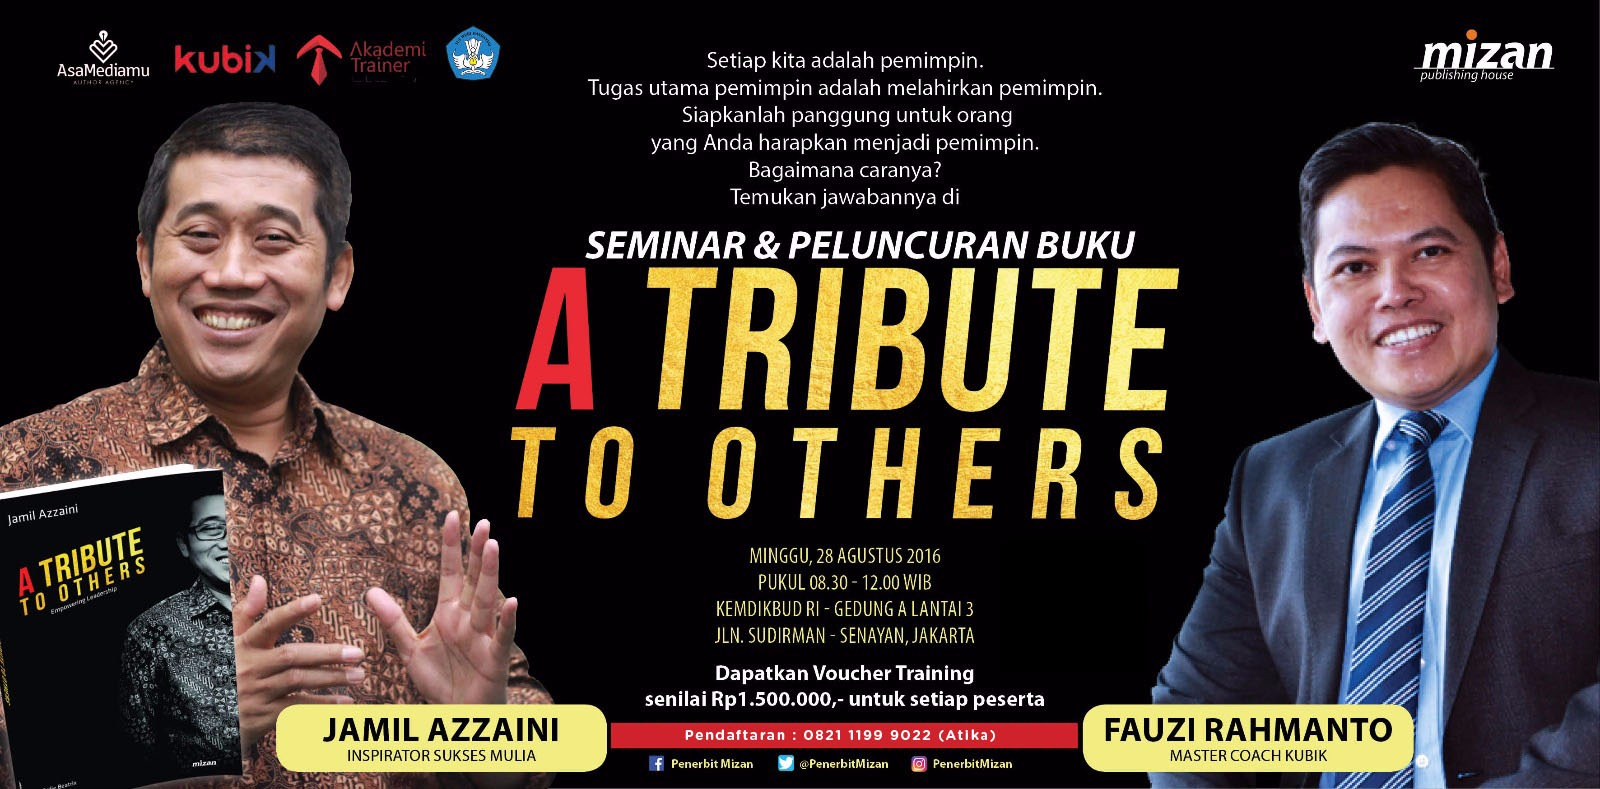 Seminar A Tribute To Others : Empowering Leadership